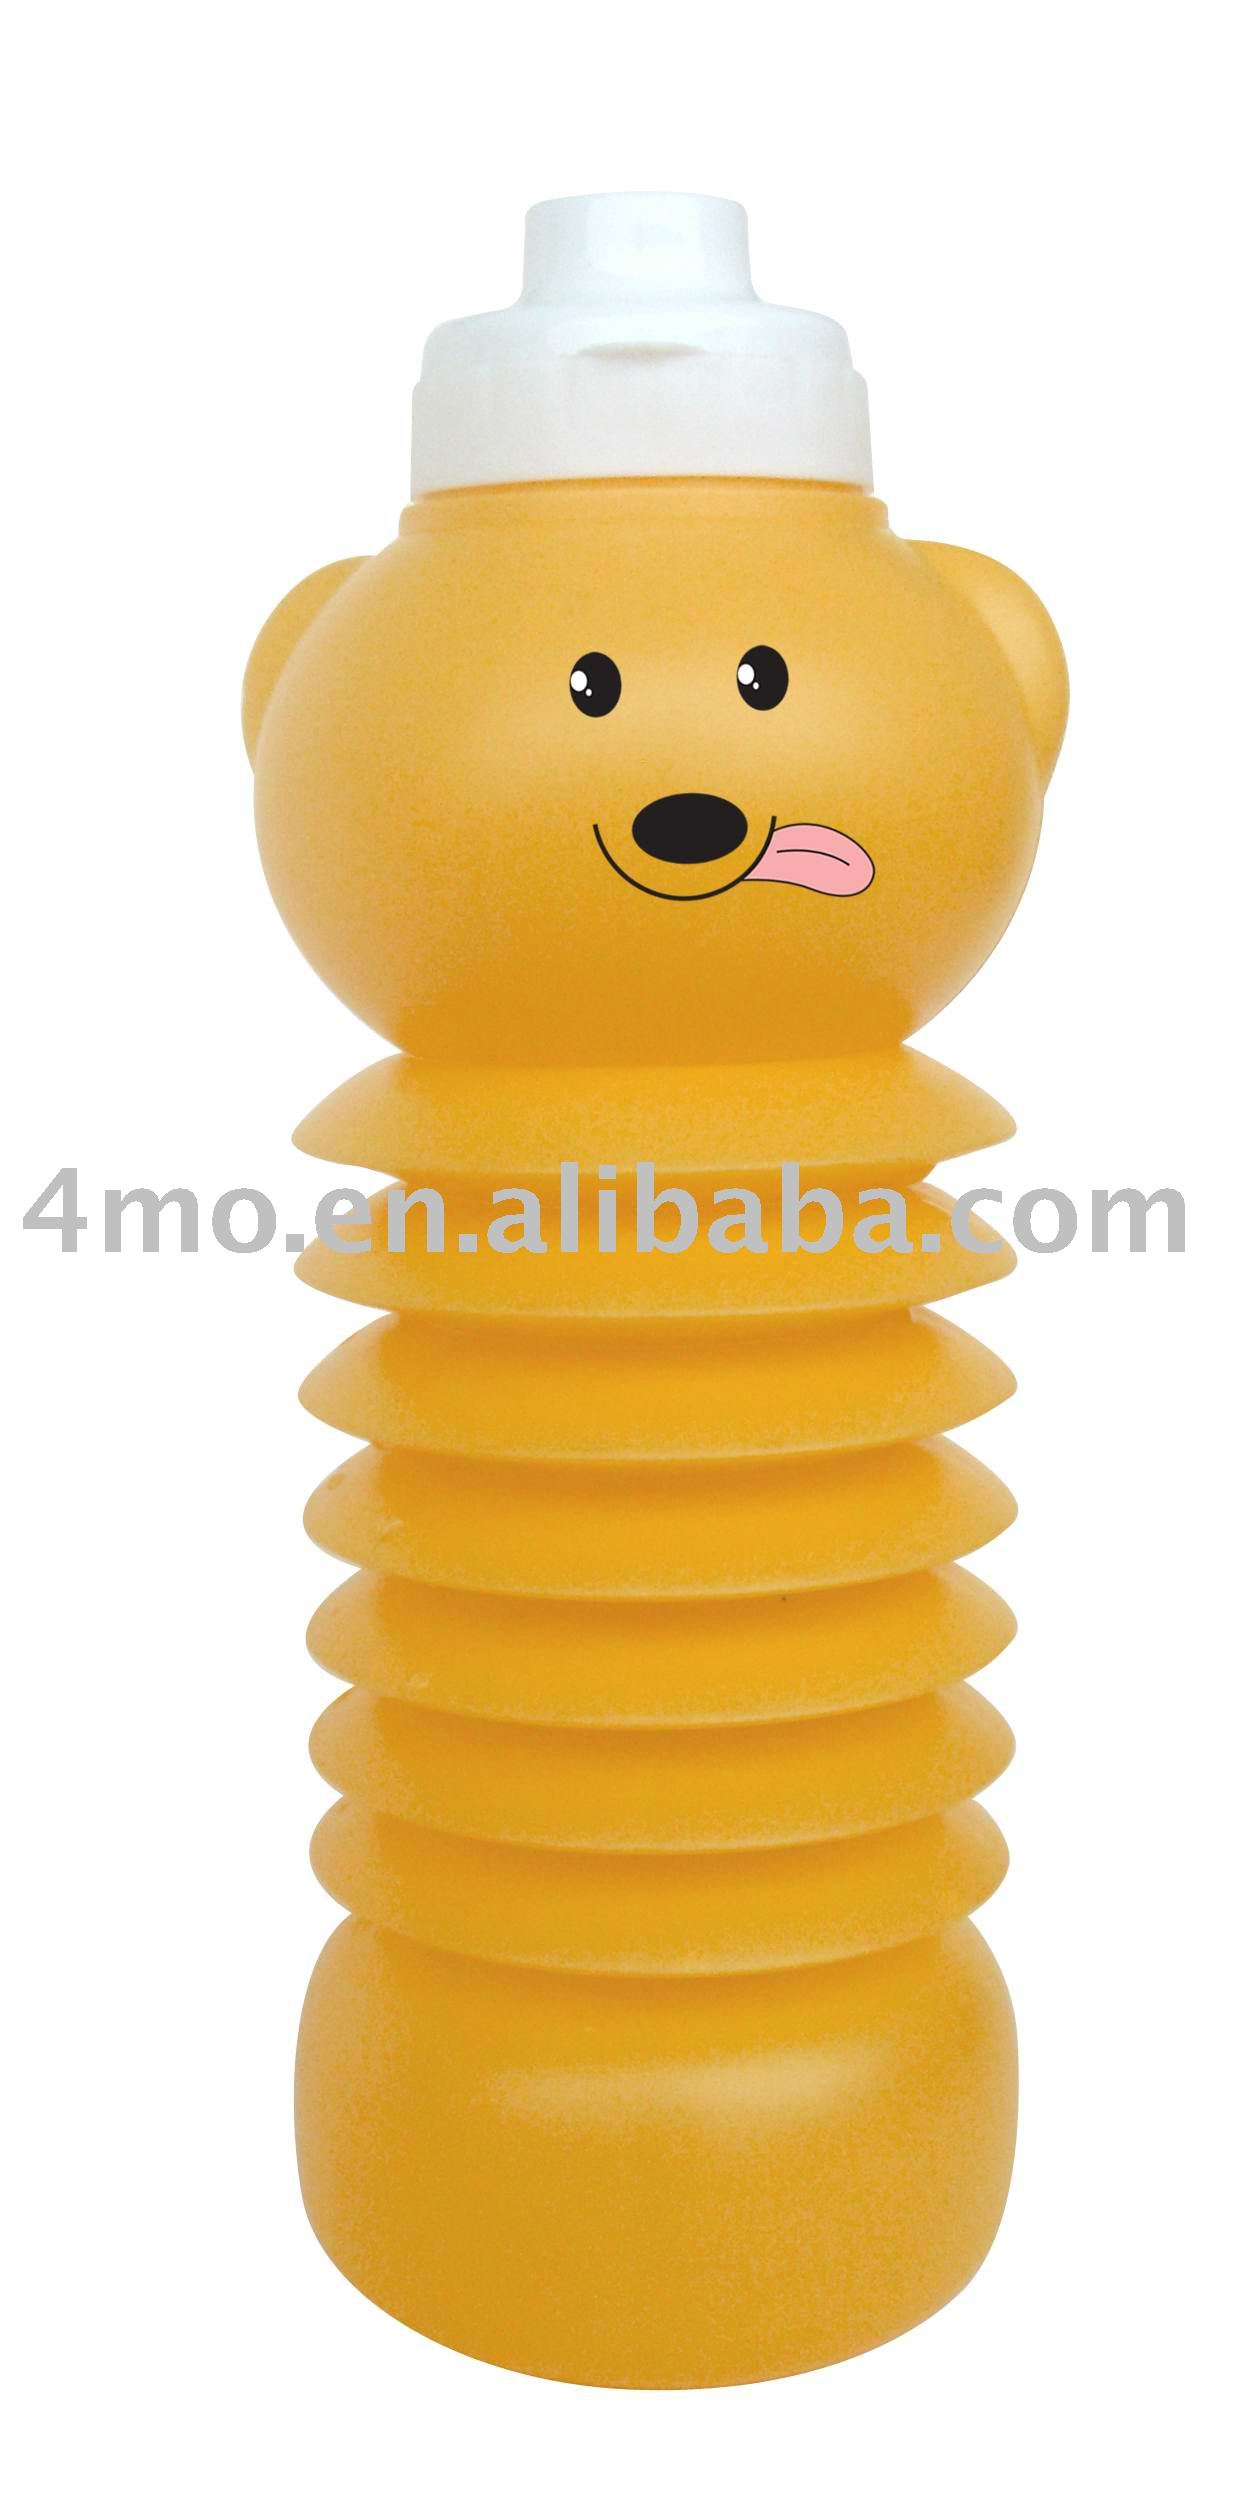 collapsible cartoon water bottle Dog shaped